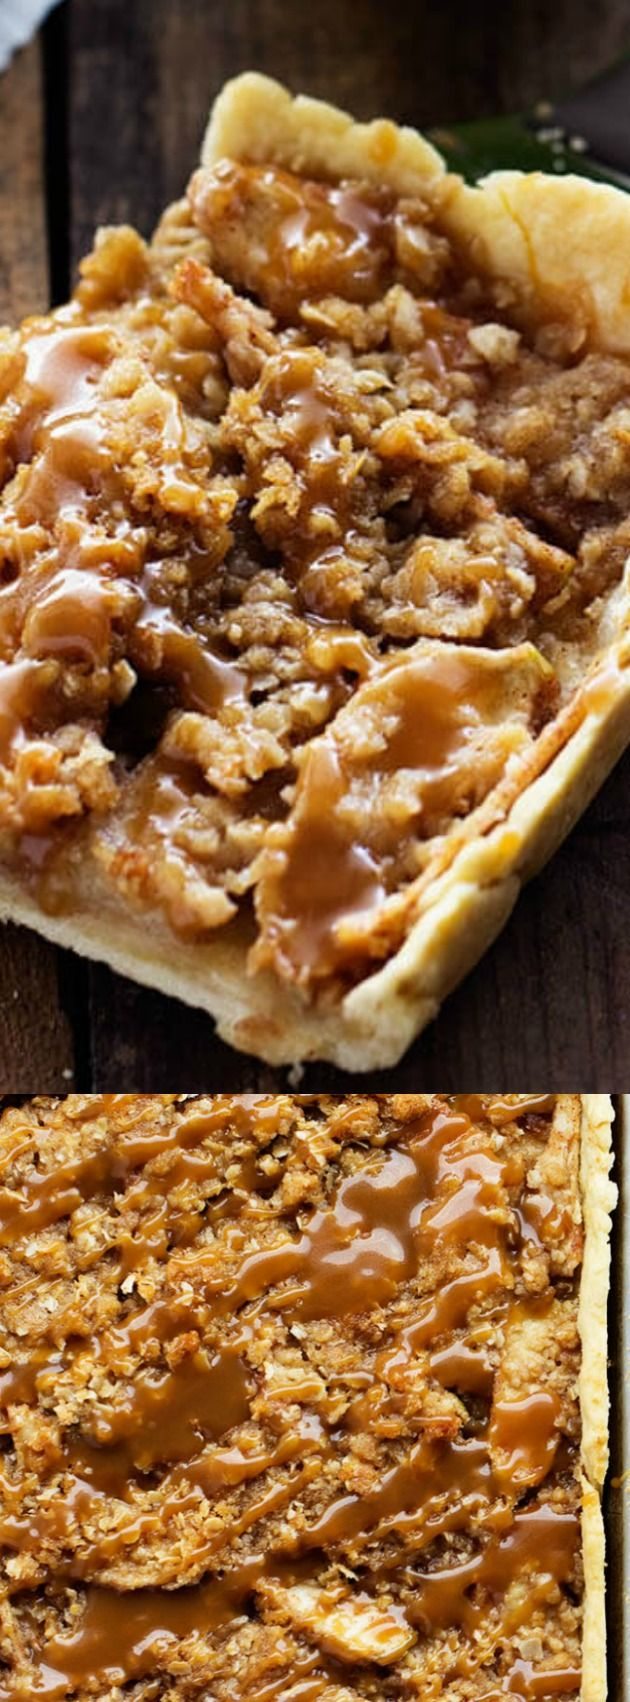 This Caramel Apple Slab Pie recipe from The Recipe Critic is a deliciously thin and flaky melt in your mouth fall dessert that you are going to LOVE!